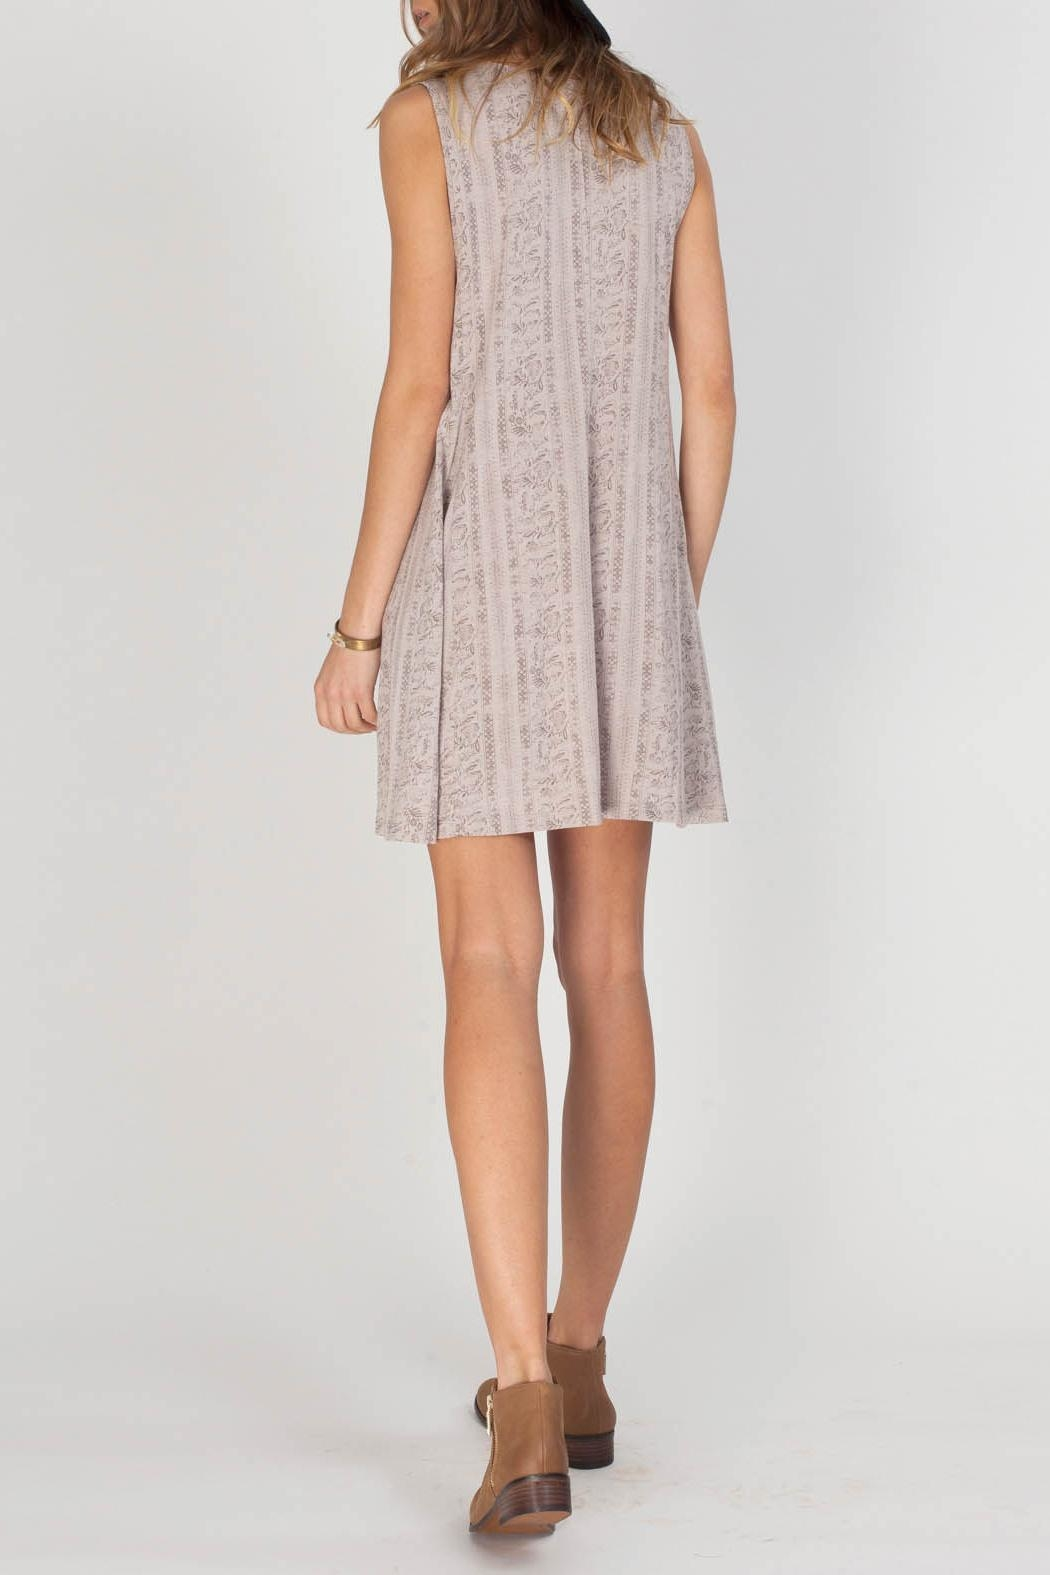 Gentle Fawn Domino Dress - Side Cropped Image